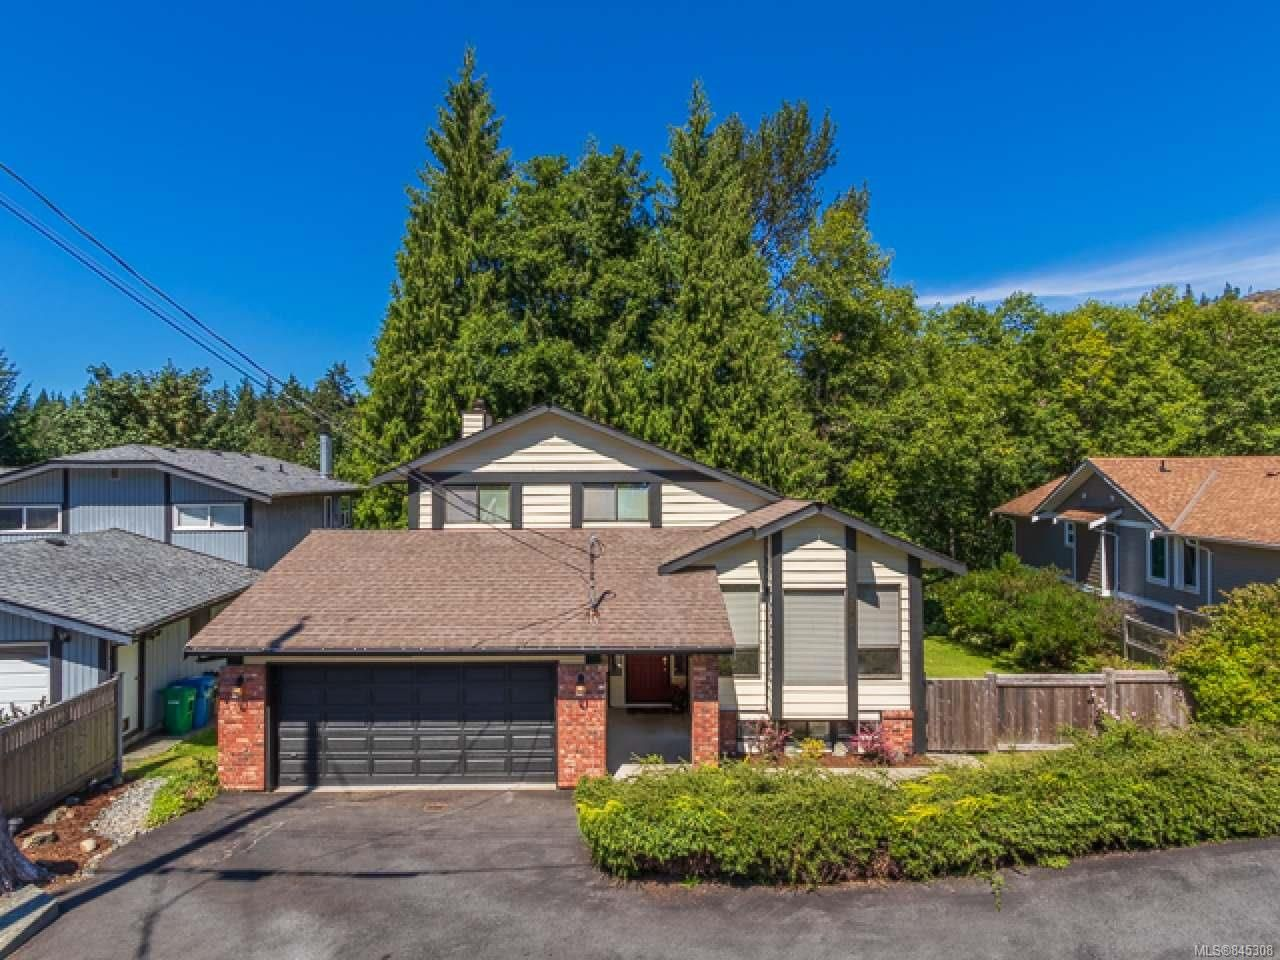 Main Photo: 3581 Fairview Dr in NANAIMO: Na Uplands House for sale (Nanaimo)  : MLS®# 845308